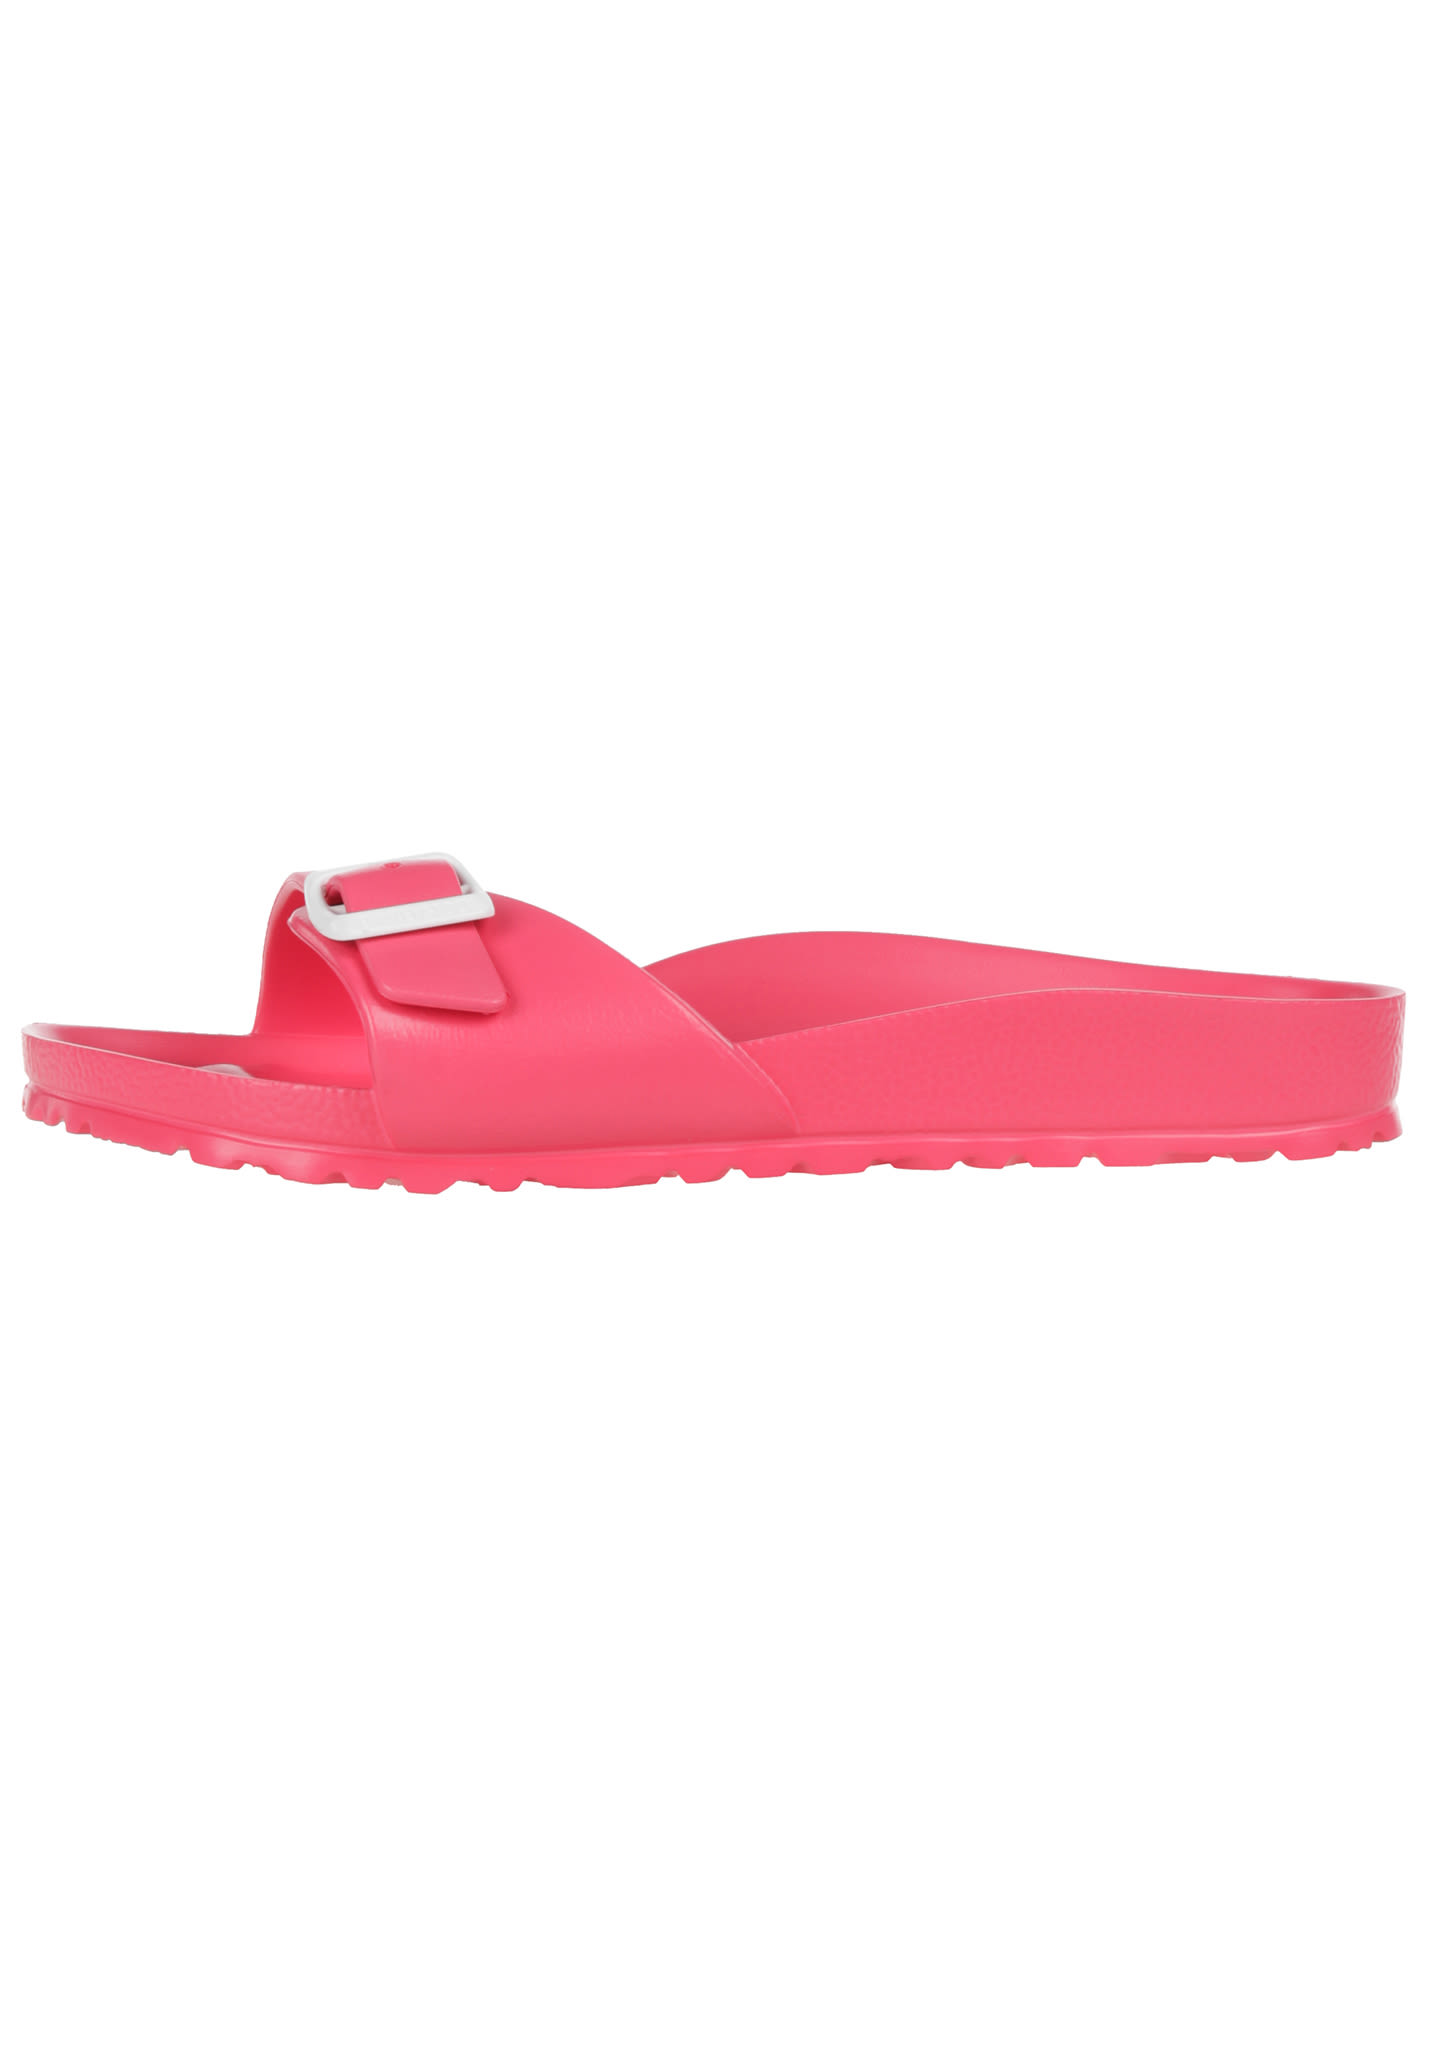 a1f78290d67150 Birkenstock Madrid EVA - Sandals for Women - Pink - Planet Sports